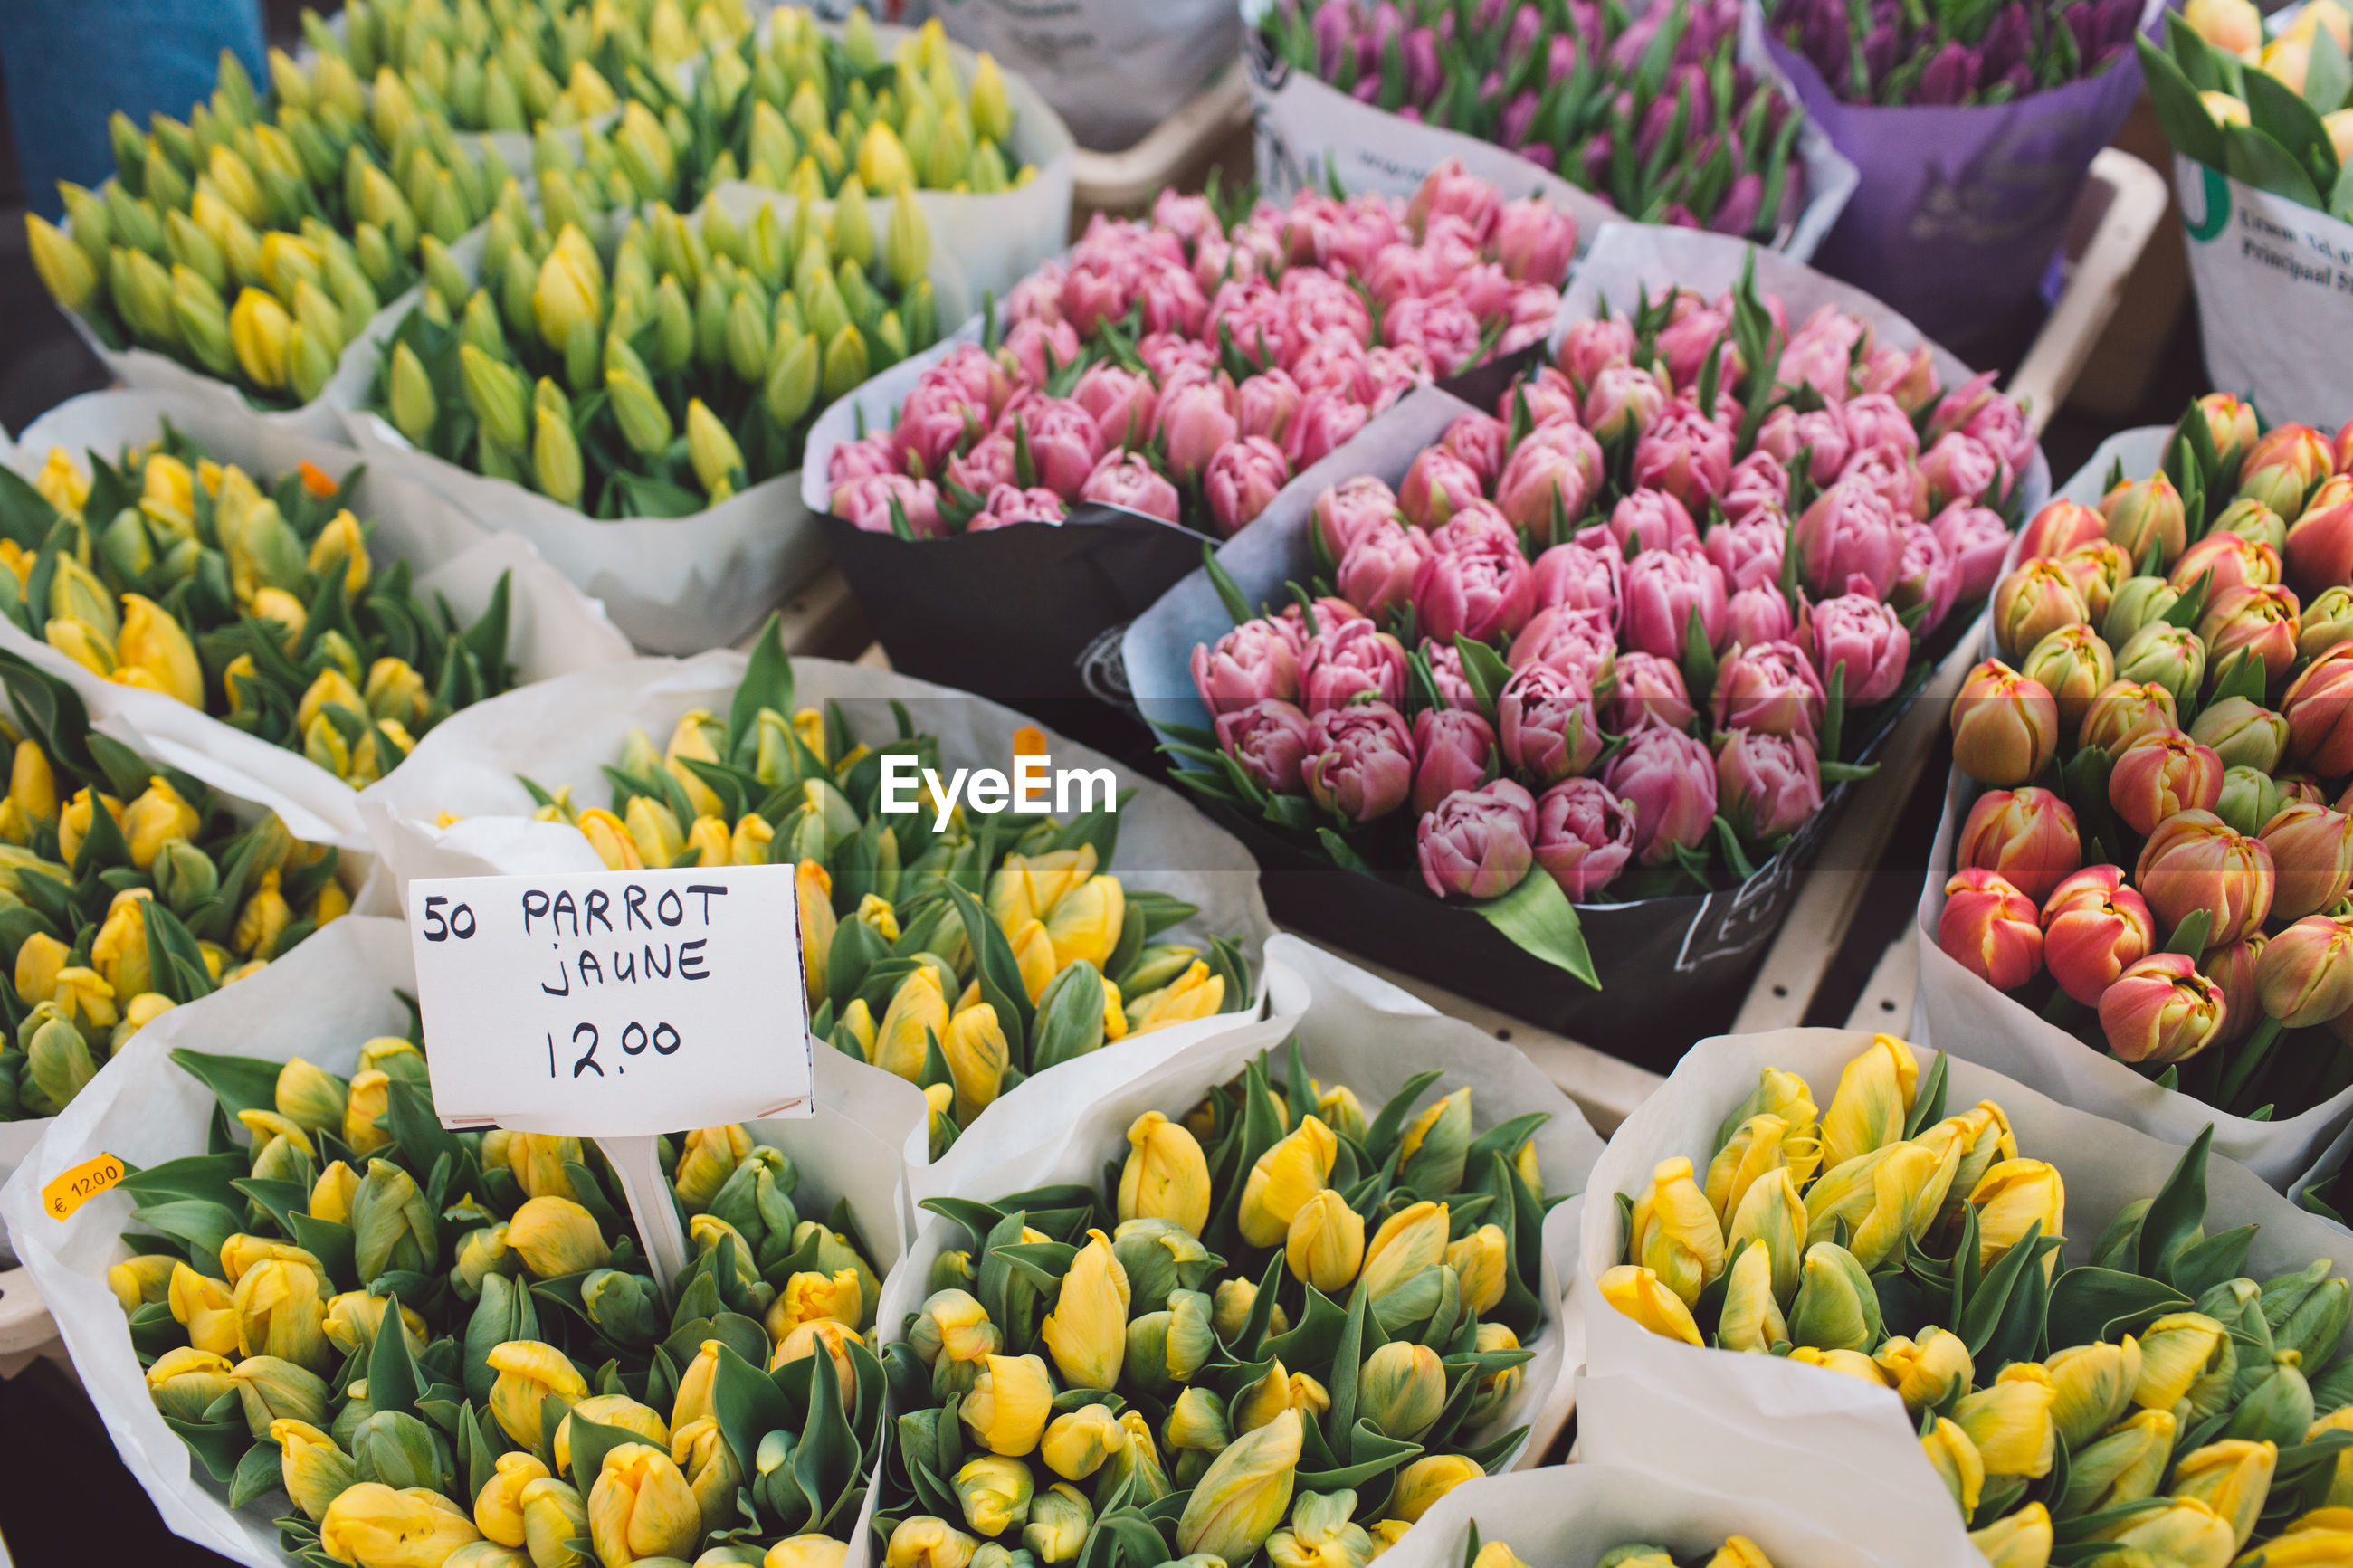 freshness, market, flowering plant, flower, retail, for sale, market stall, price tag, beauty in nature, plant, tulip, abundance, large group of objects, fragility, vulnerability, choice, variation, yellow, retail display, flower head, no people, bouquet, flower market, sale, outdoors, flower arrangement